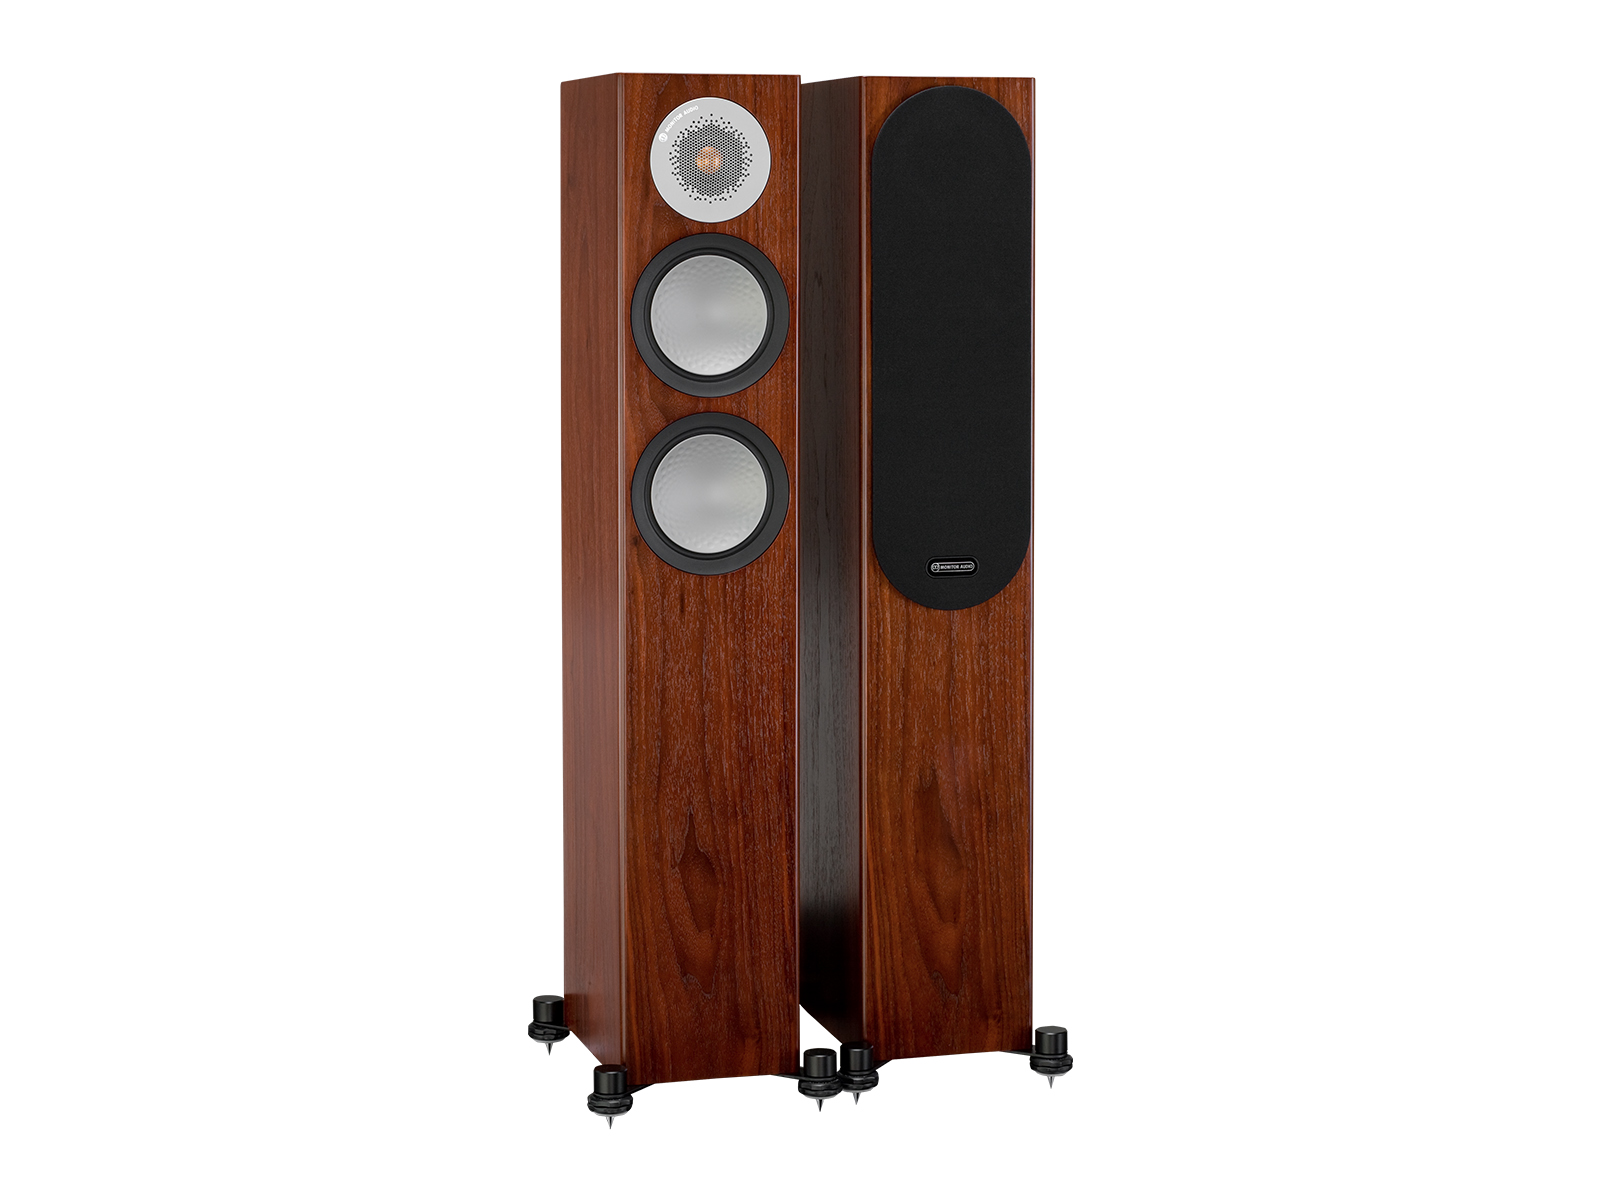 Silver 200, floorstanding speakers, with and without grille in a walnut finish.